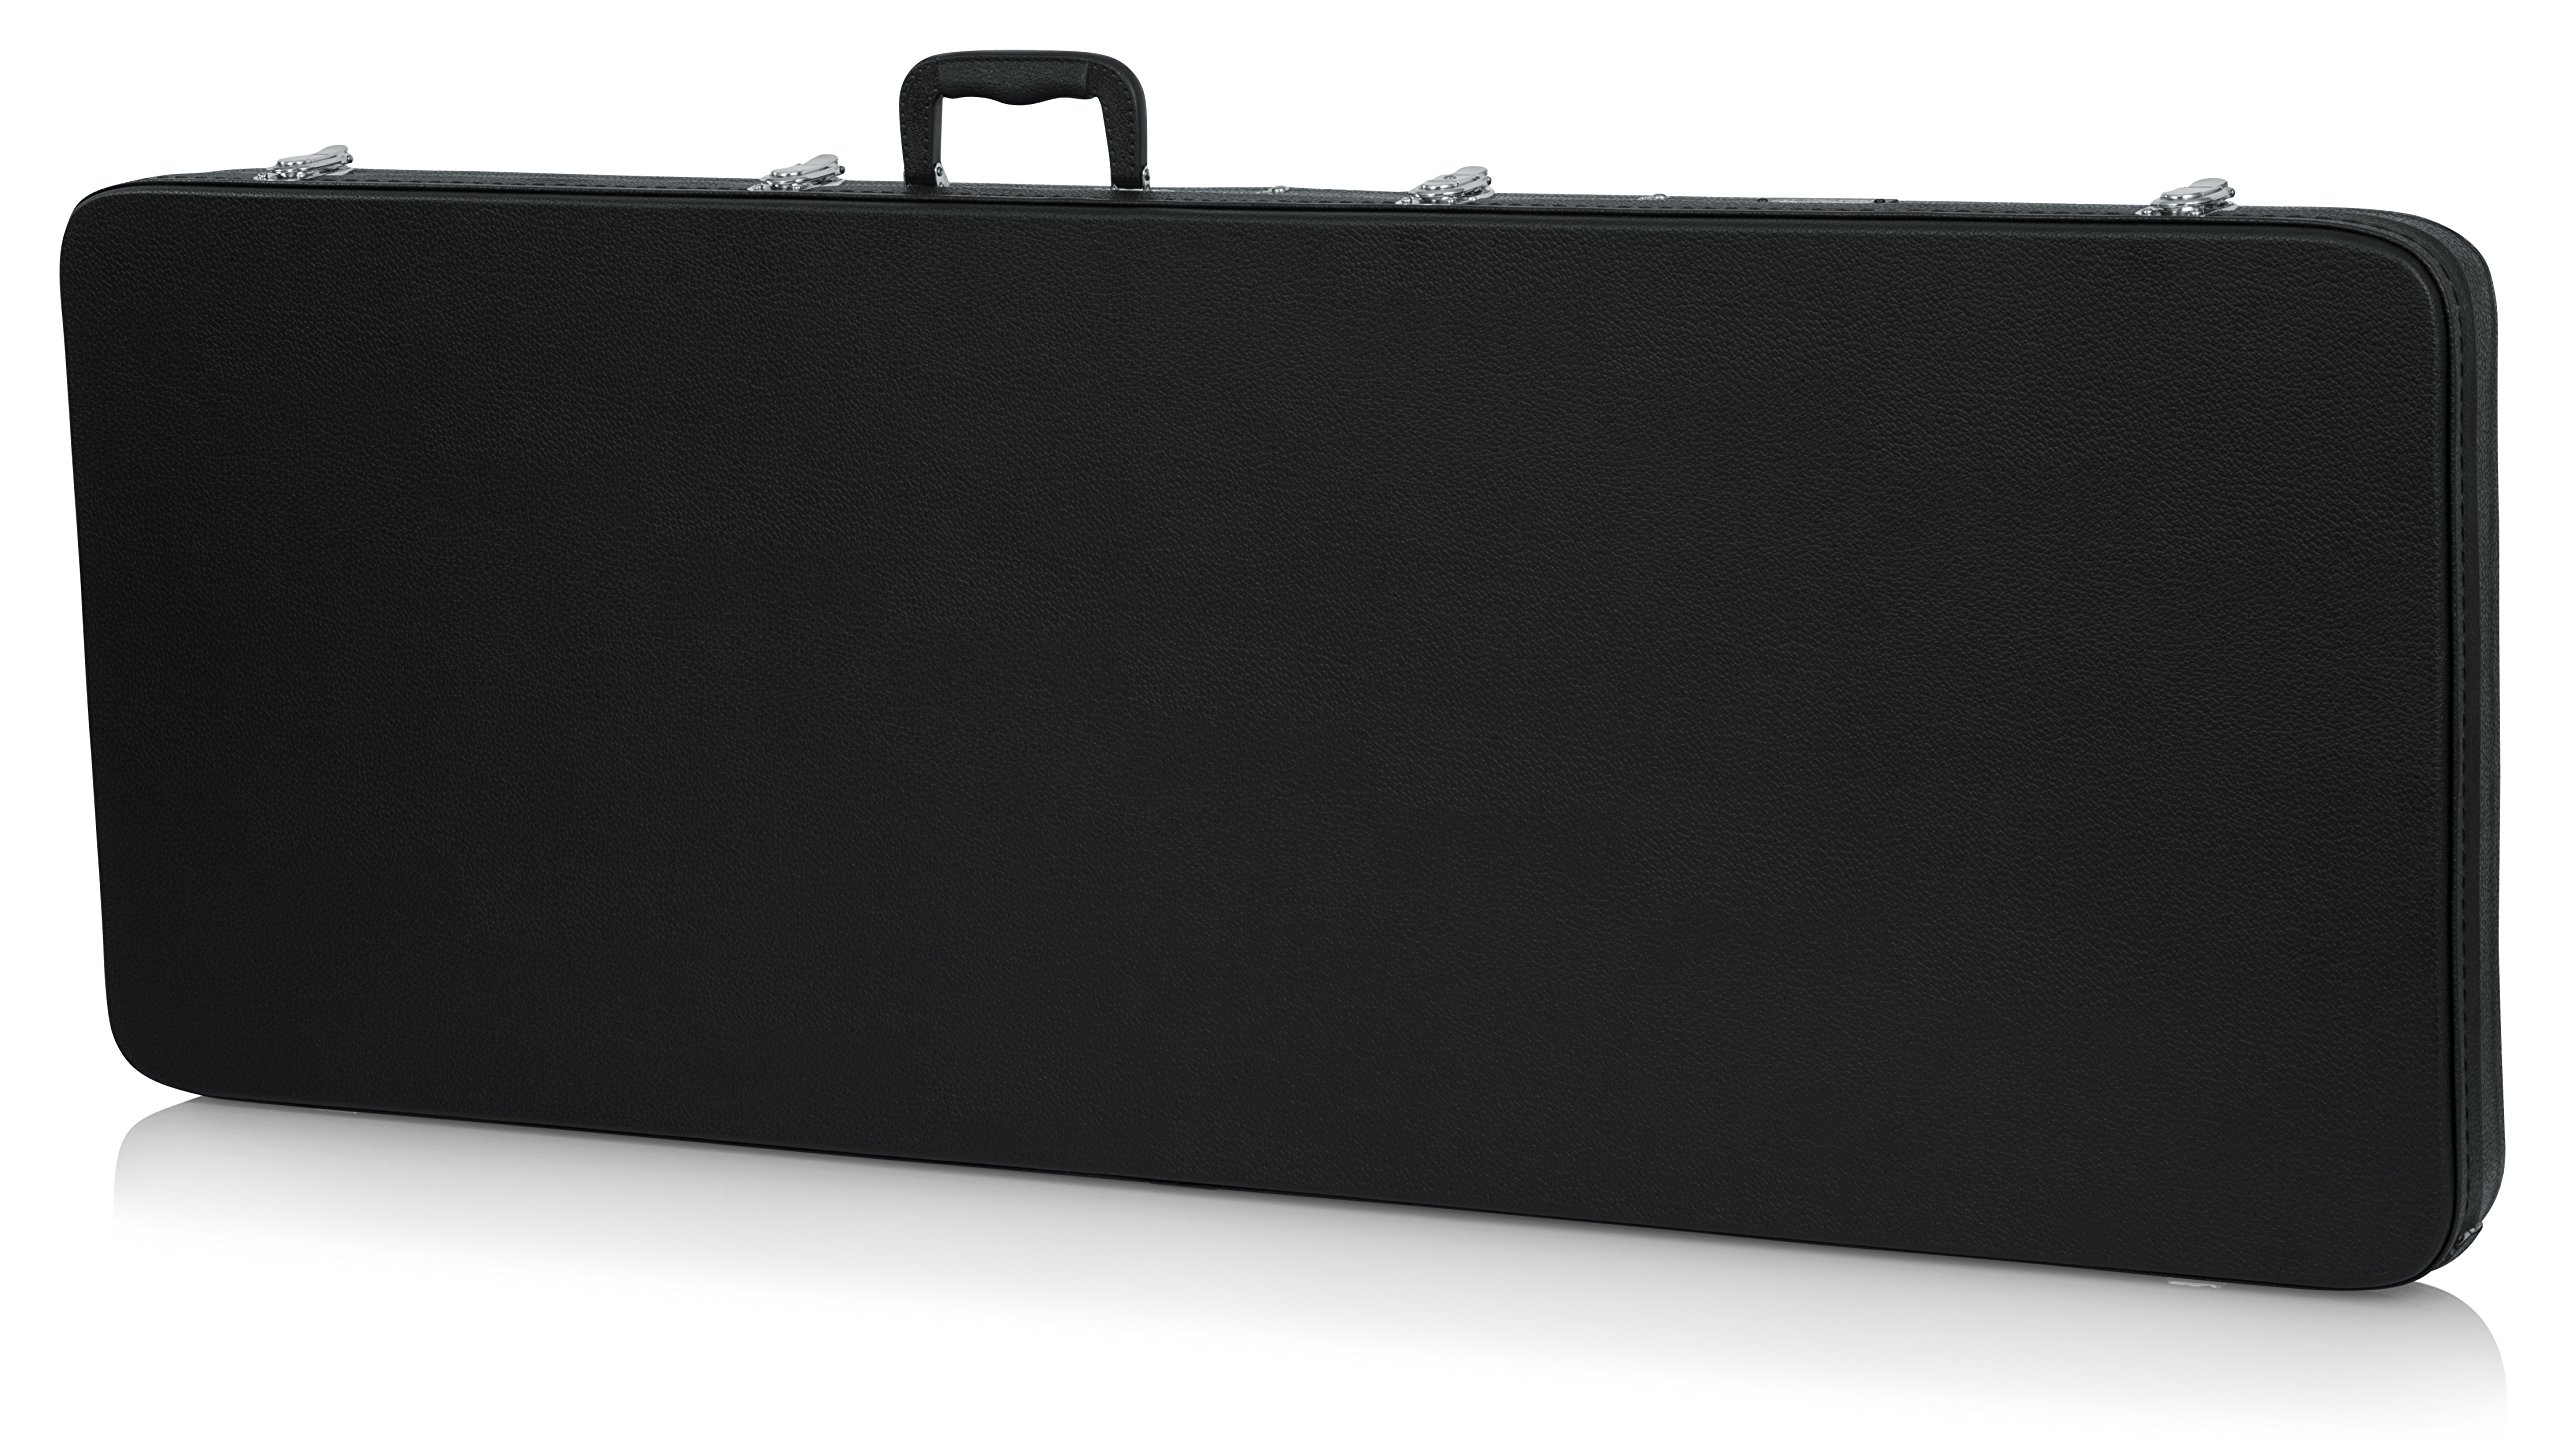 Gator Cases Hard-Shell Wood Case for Extreme Shaped Guitars; Fits Explorer, Flying V, BC Rich, & More (GWE-EXTREME) by Gator